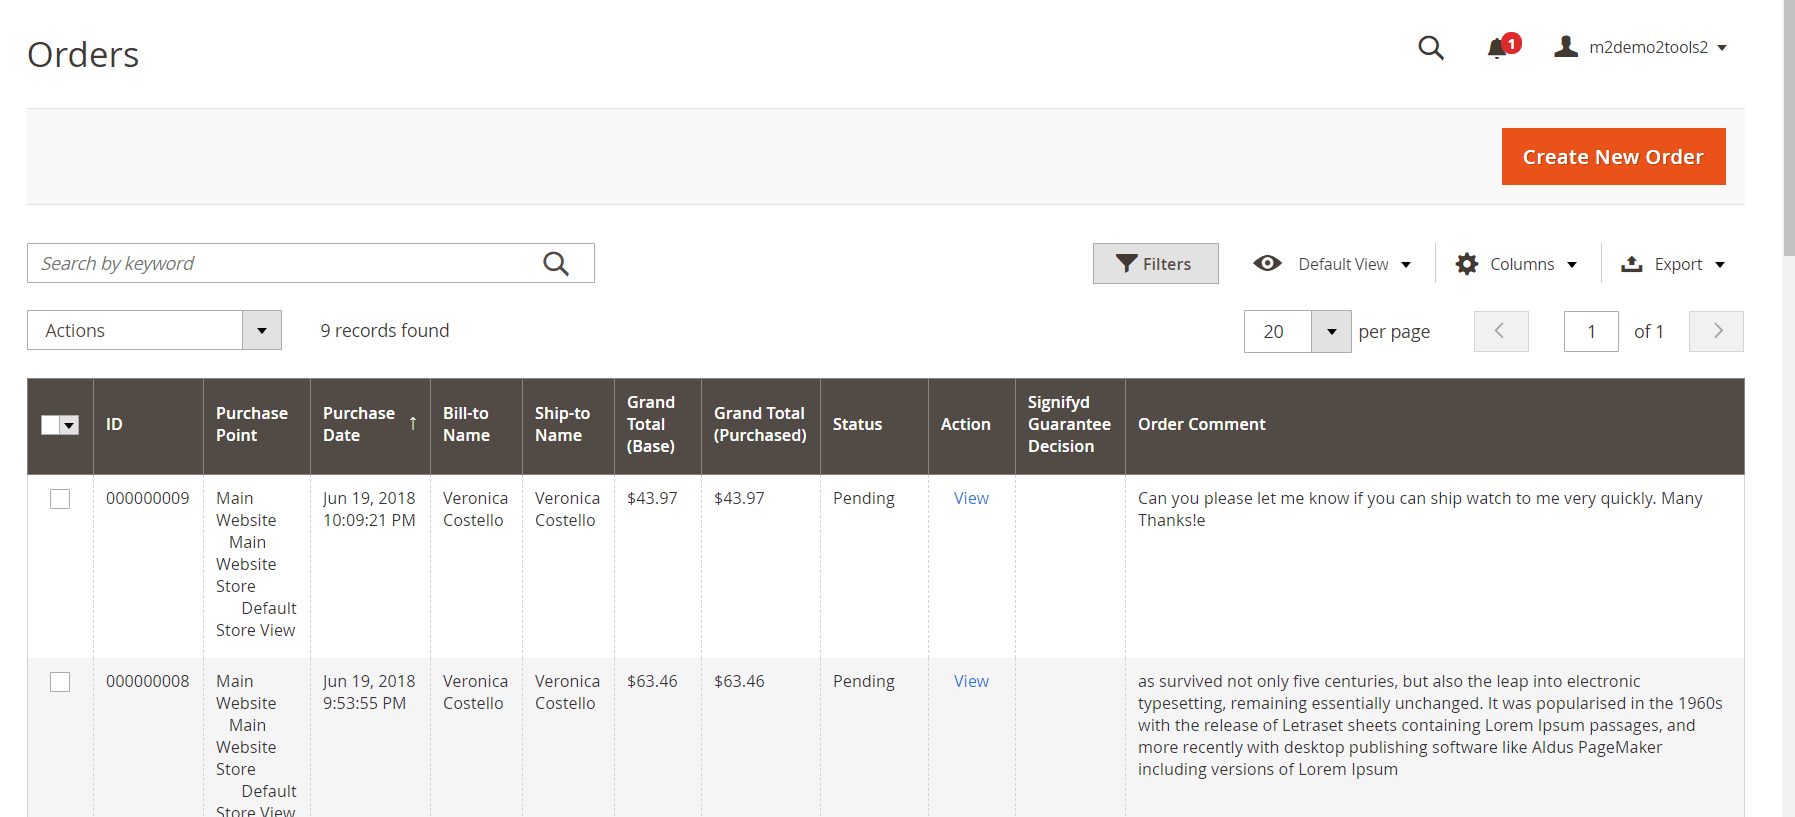 Order comment on admin grid